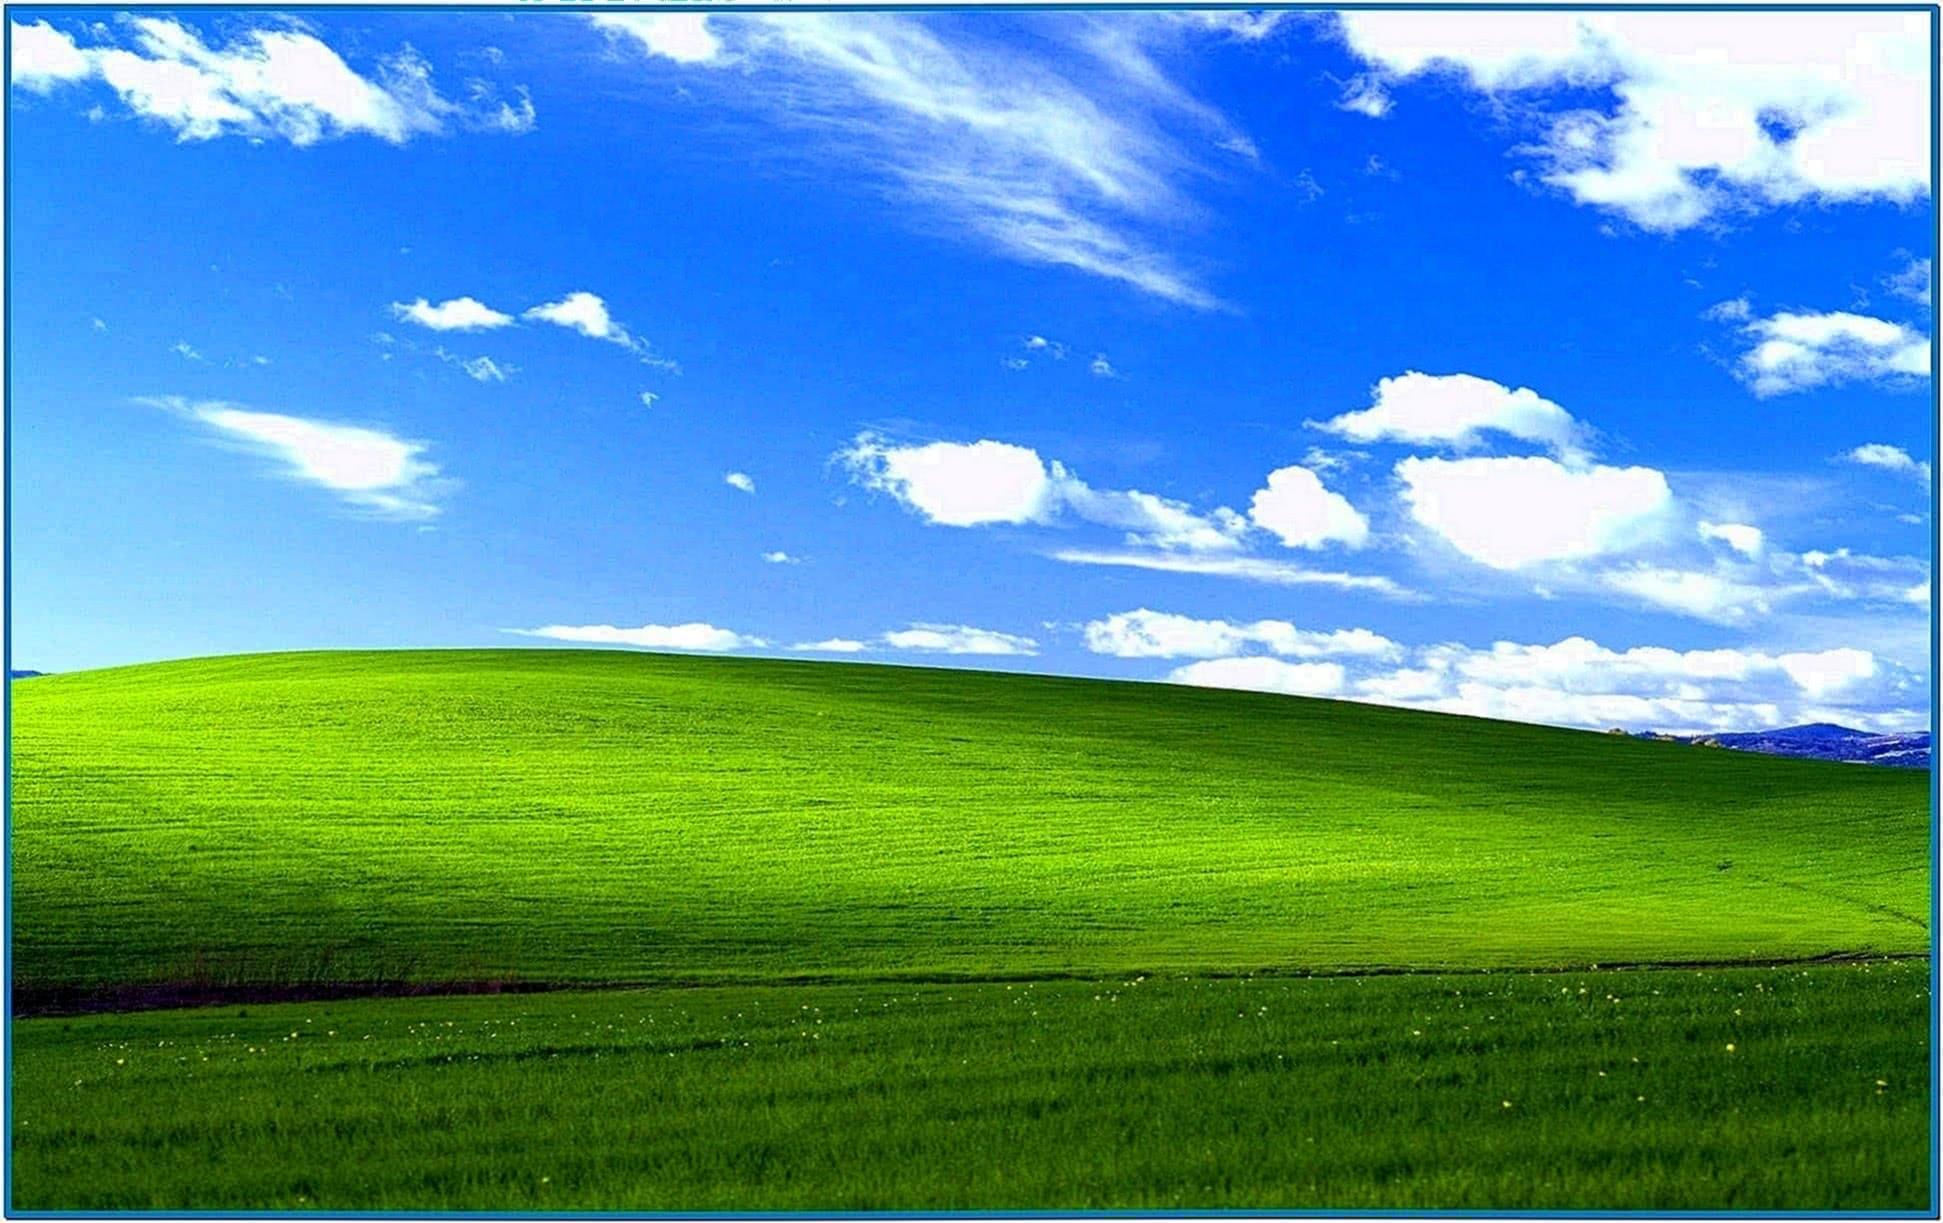 Screensaver as Desktop Background Windows XP